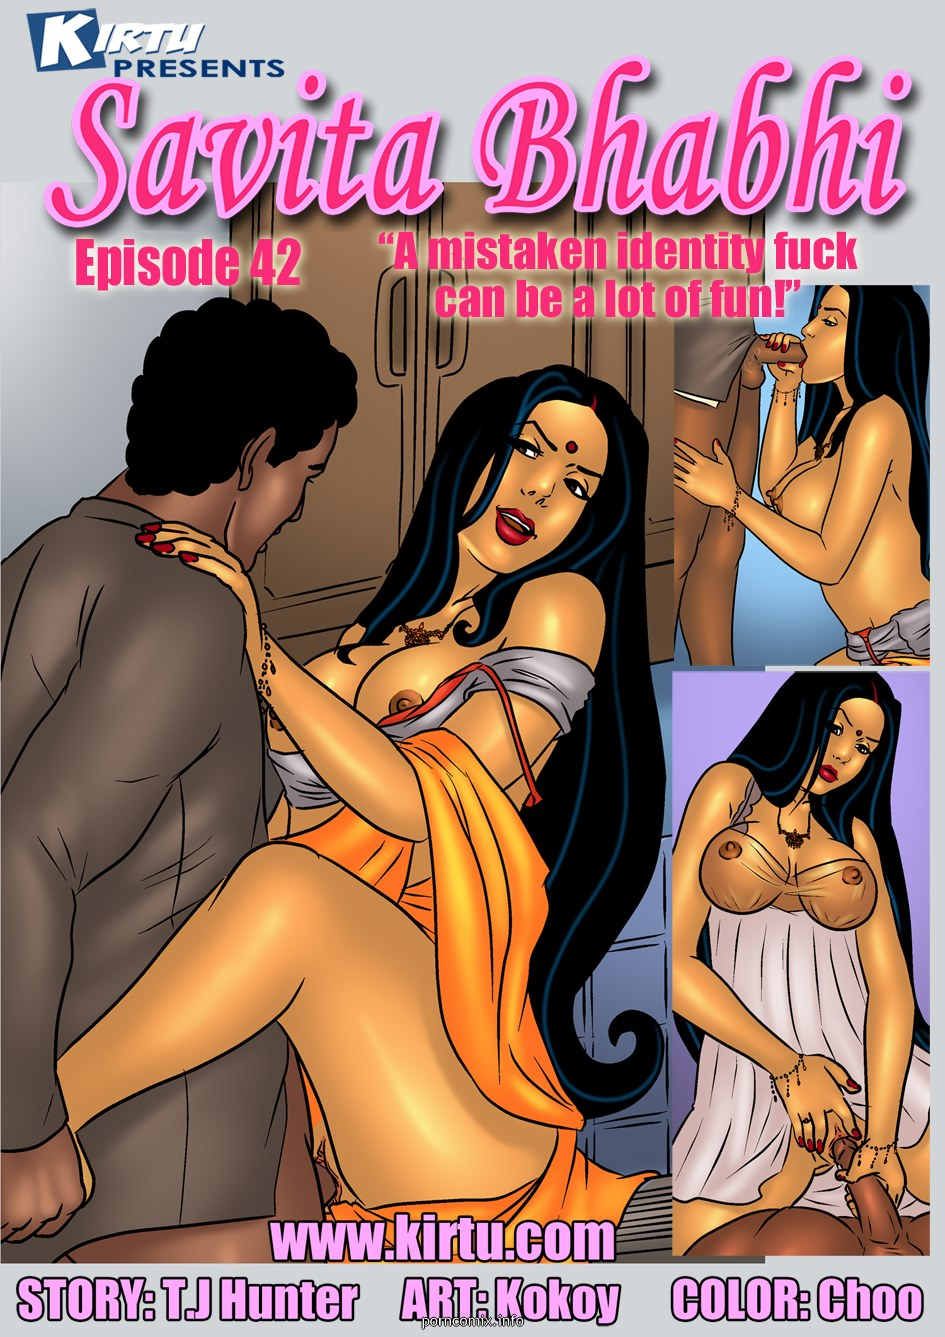 tamil-sex-comics-images-view-outdoorsex-venezuela